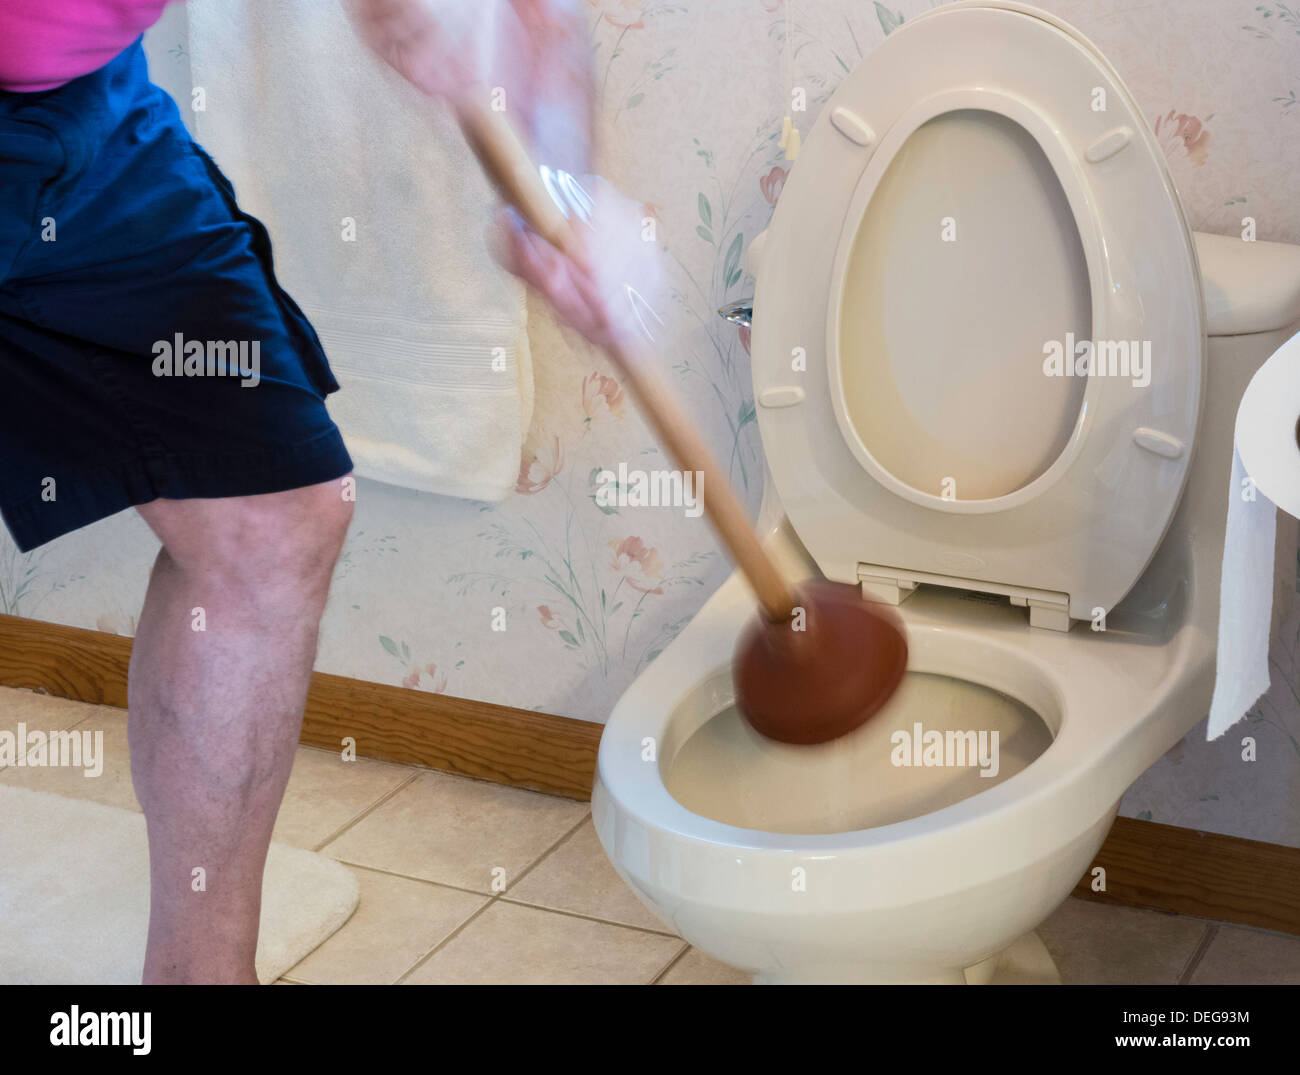 Man with Plunger Unclogging Residential Toilet, USA Stock Photo ...